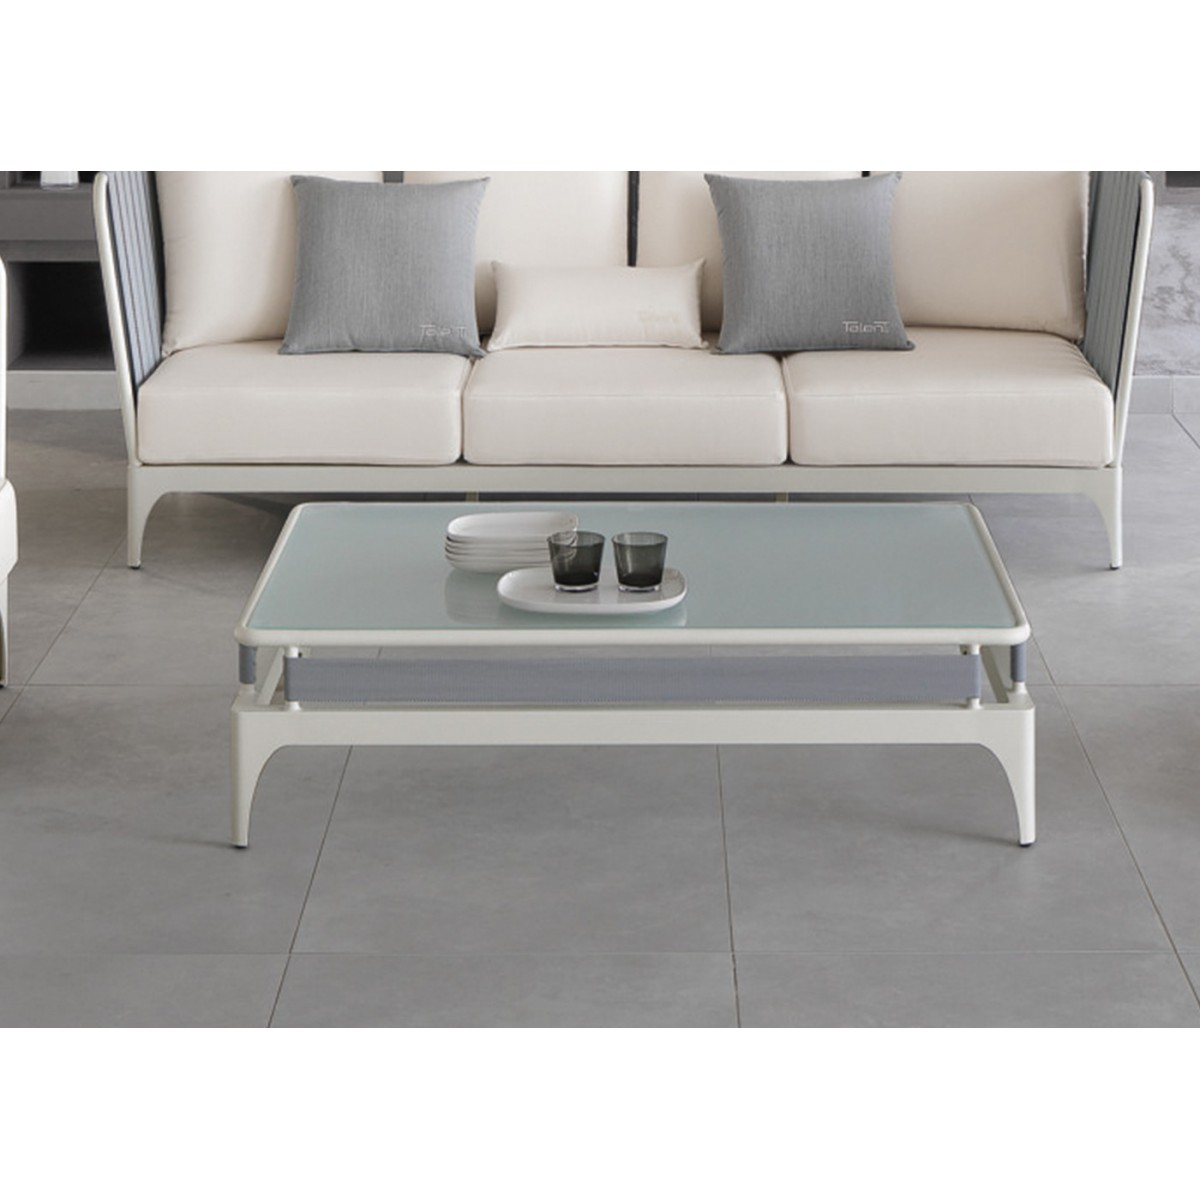 Table basse exterieur luxe for Table pour exterieur